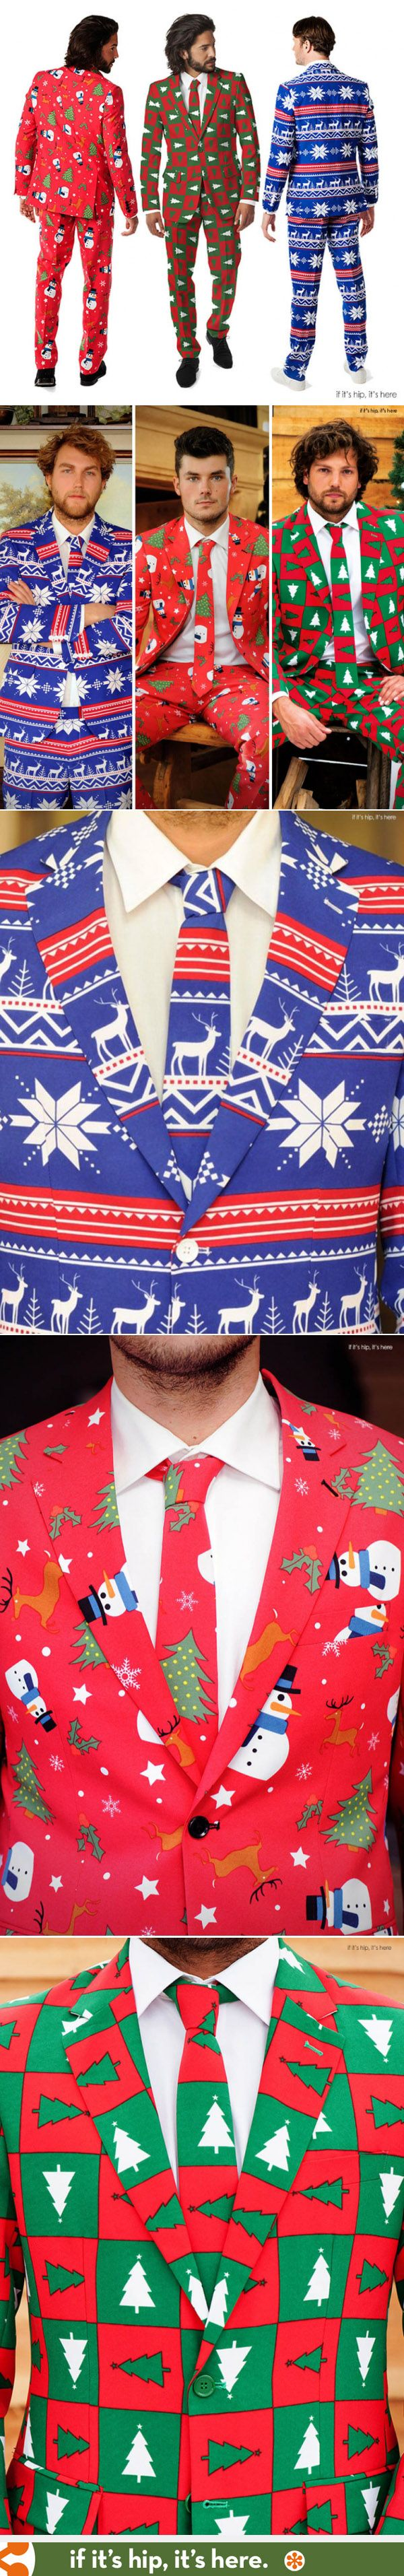 Why wear an Ugly Christmas Sweater when you can rock the Ugly Christmas Suit? |  http://www.ifitshipitshere.com/ugly-christmas-suits-fabulously-festive/